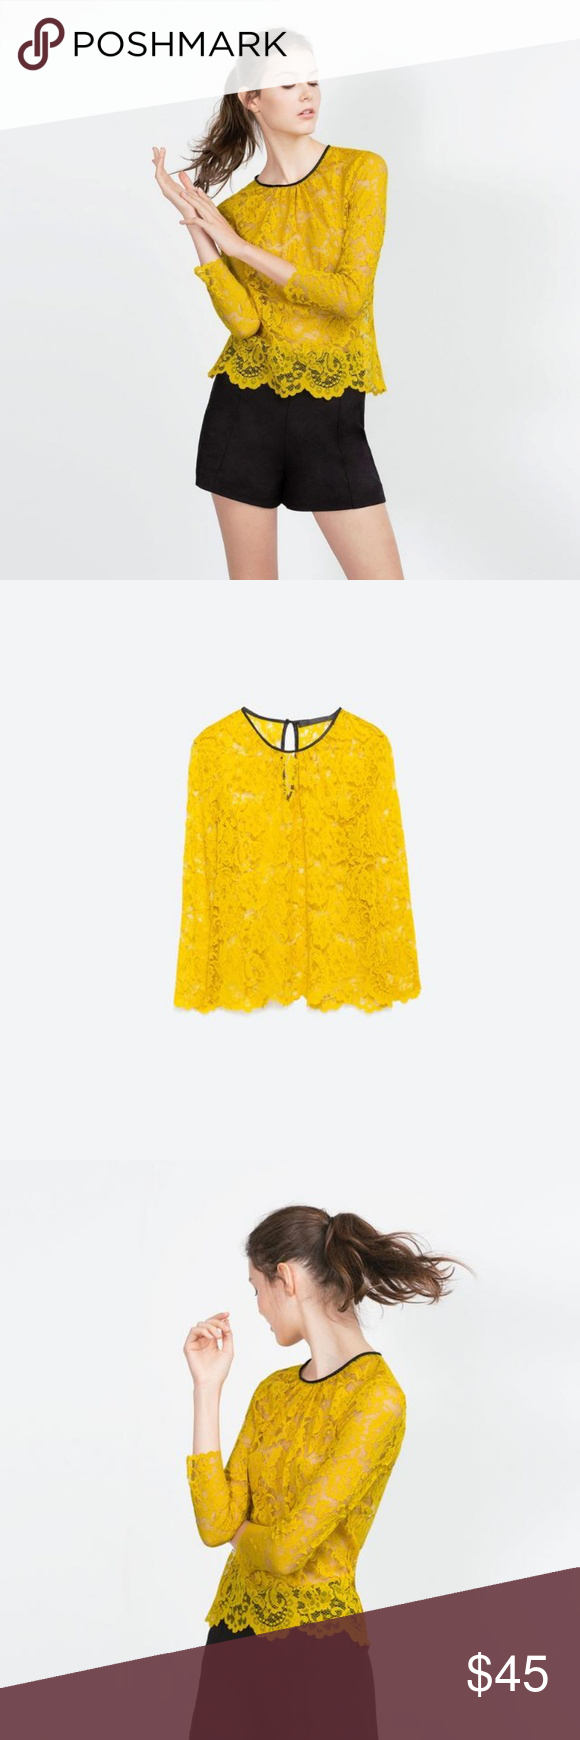 ccf06f51622a7d Zara Yellow Lace Top New Without Tags! Gorgeous! Zara Tops   My Posh ...